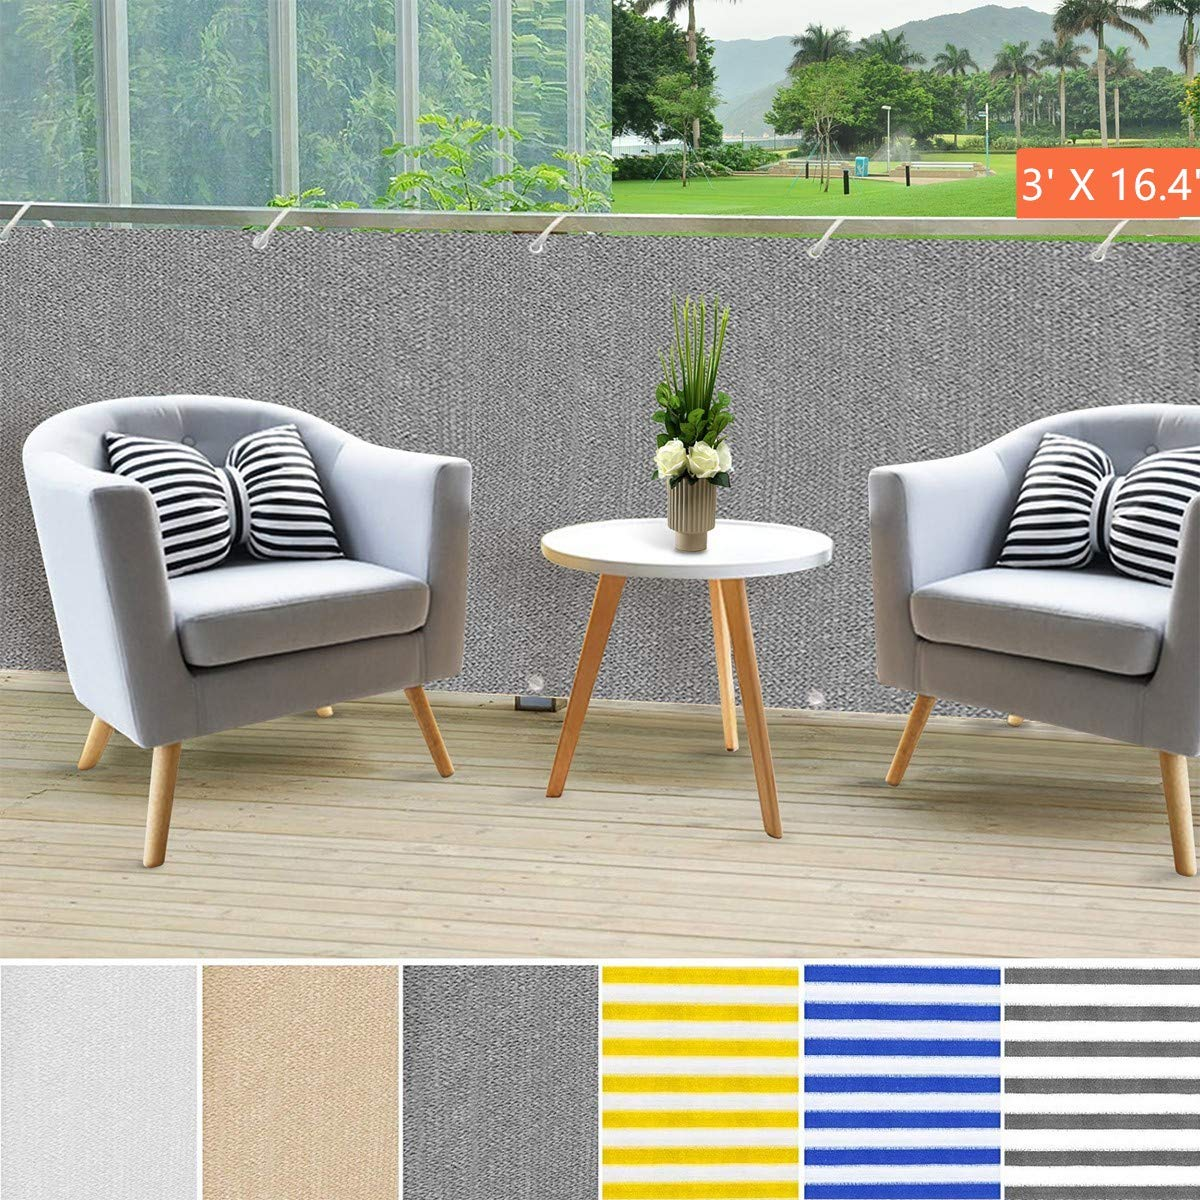 Balcony Privacy Screening Cover |Shoiwn Fence Covering for Sun Protection - 3' x 16'4'' - Blue/White Strips Multiple Colors Available (Greay)